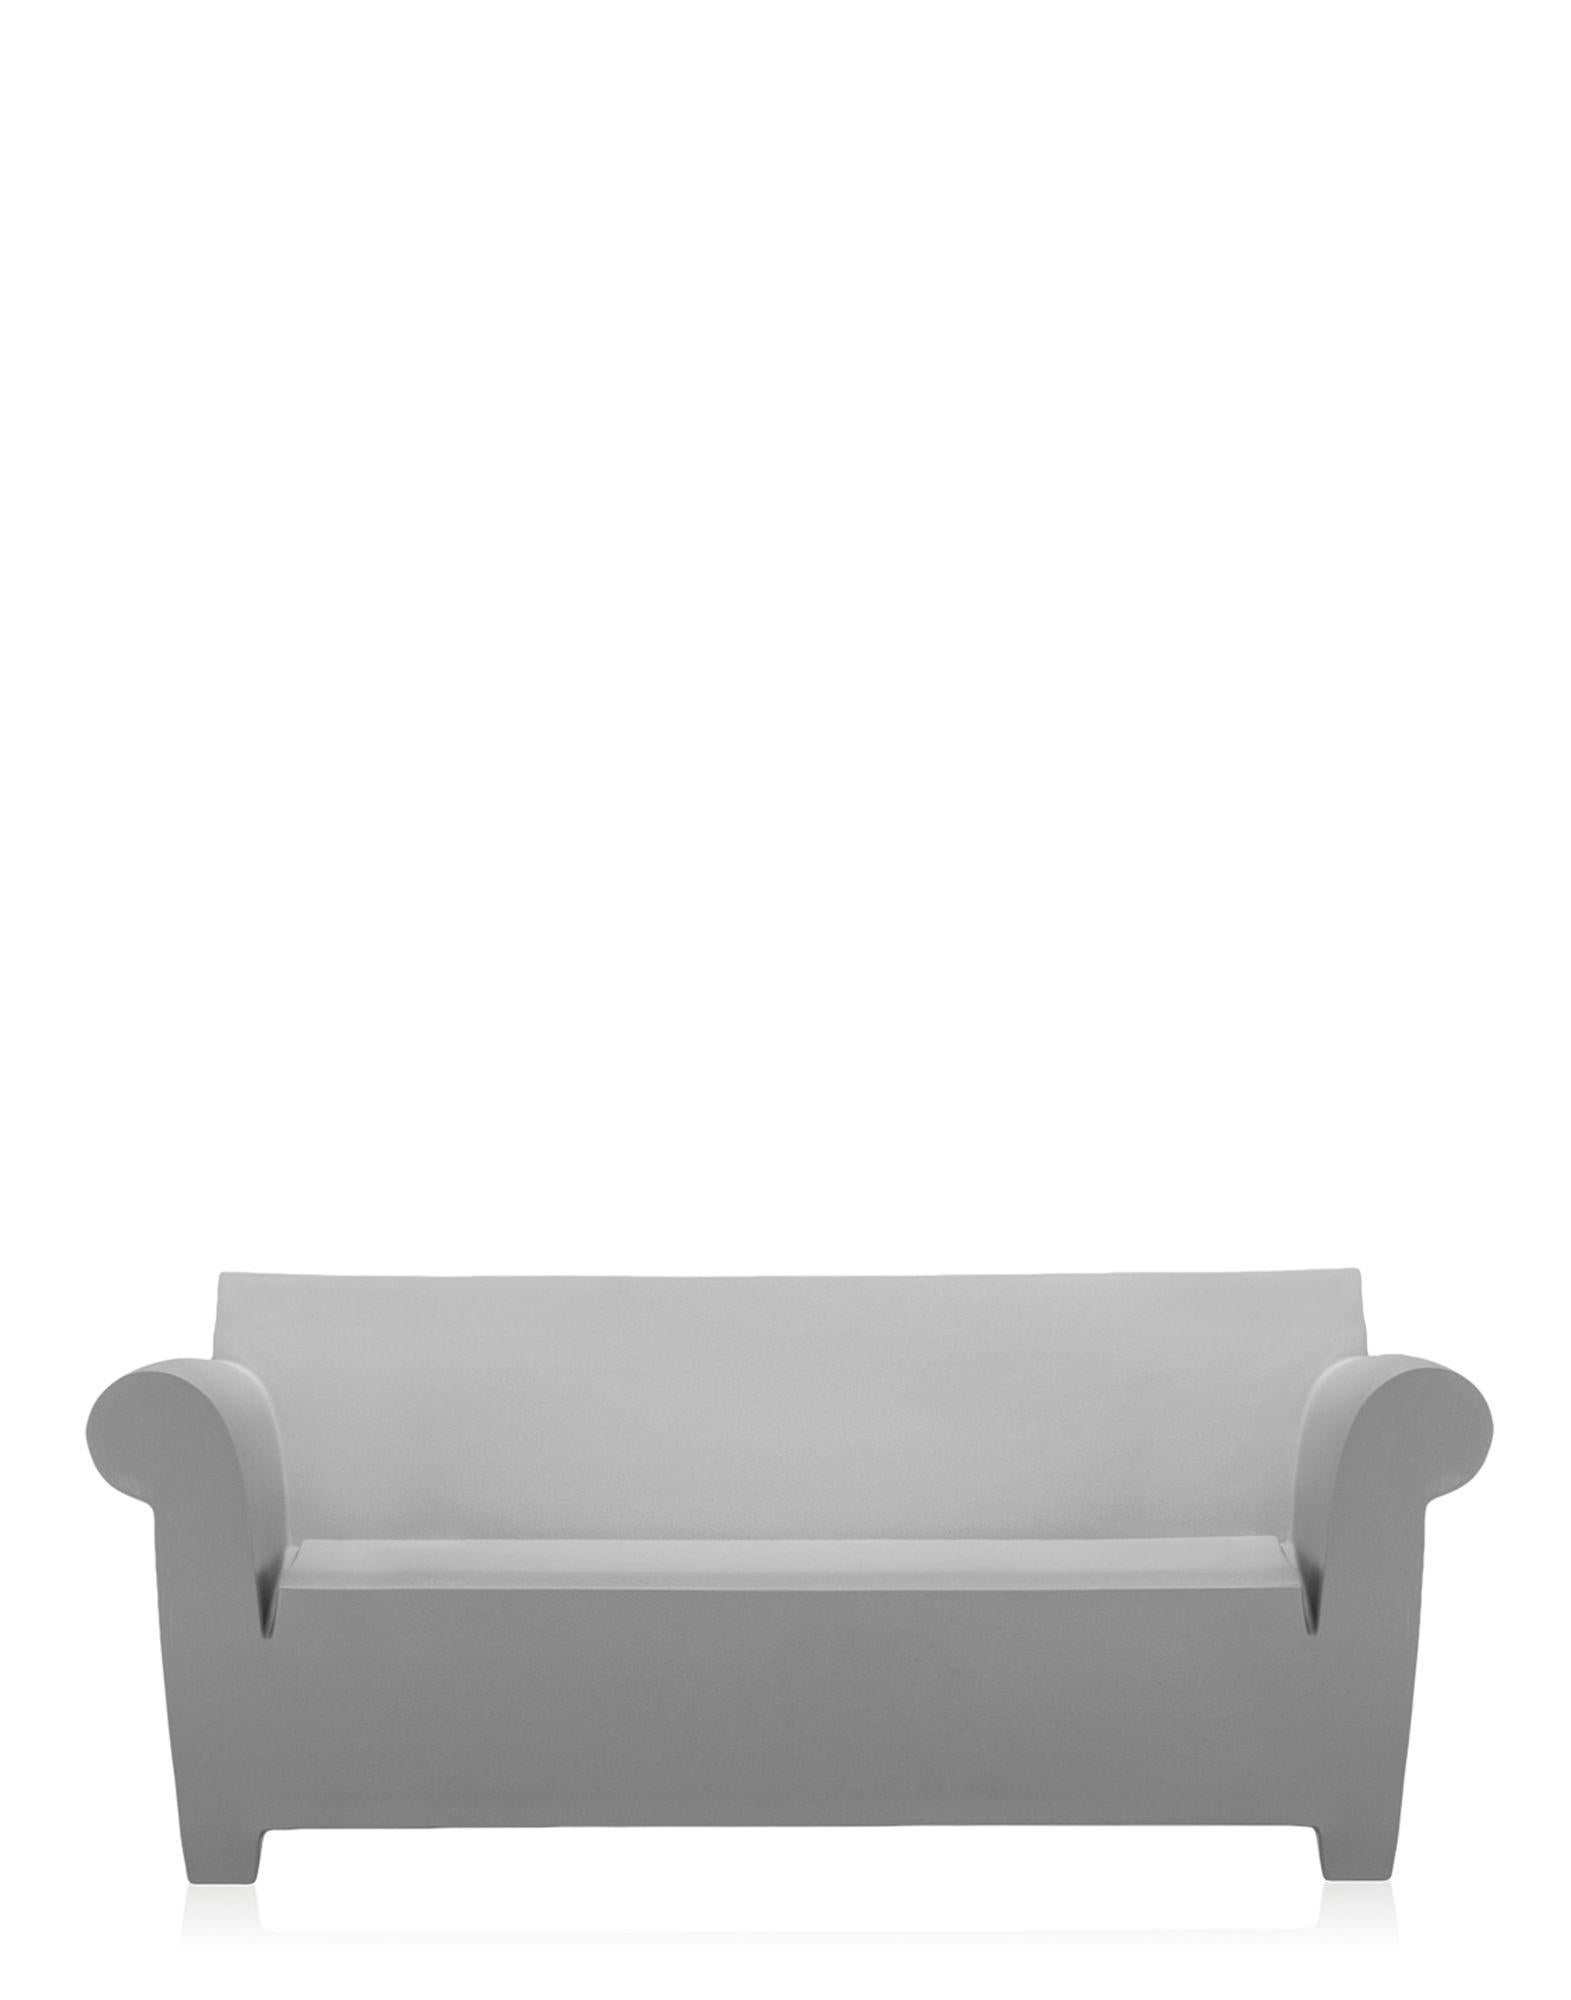 Kartell Sofa Kartell Bubble Club 2 Seat Sofa In Light Grey By Philippe Starck